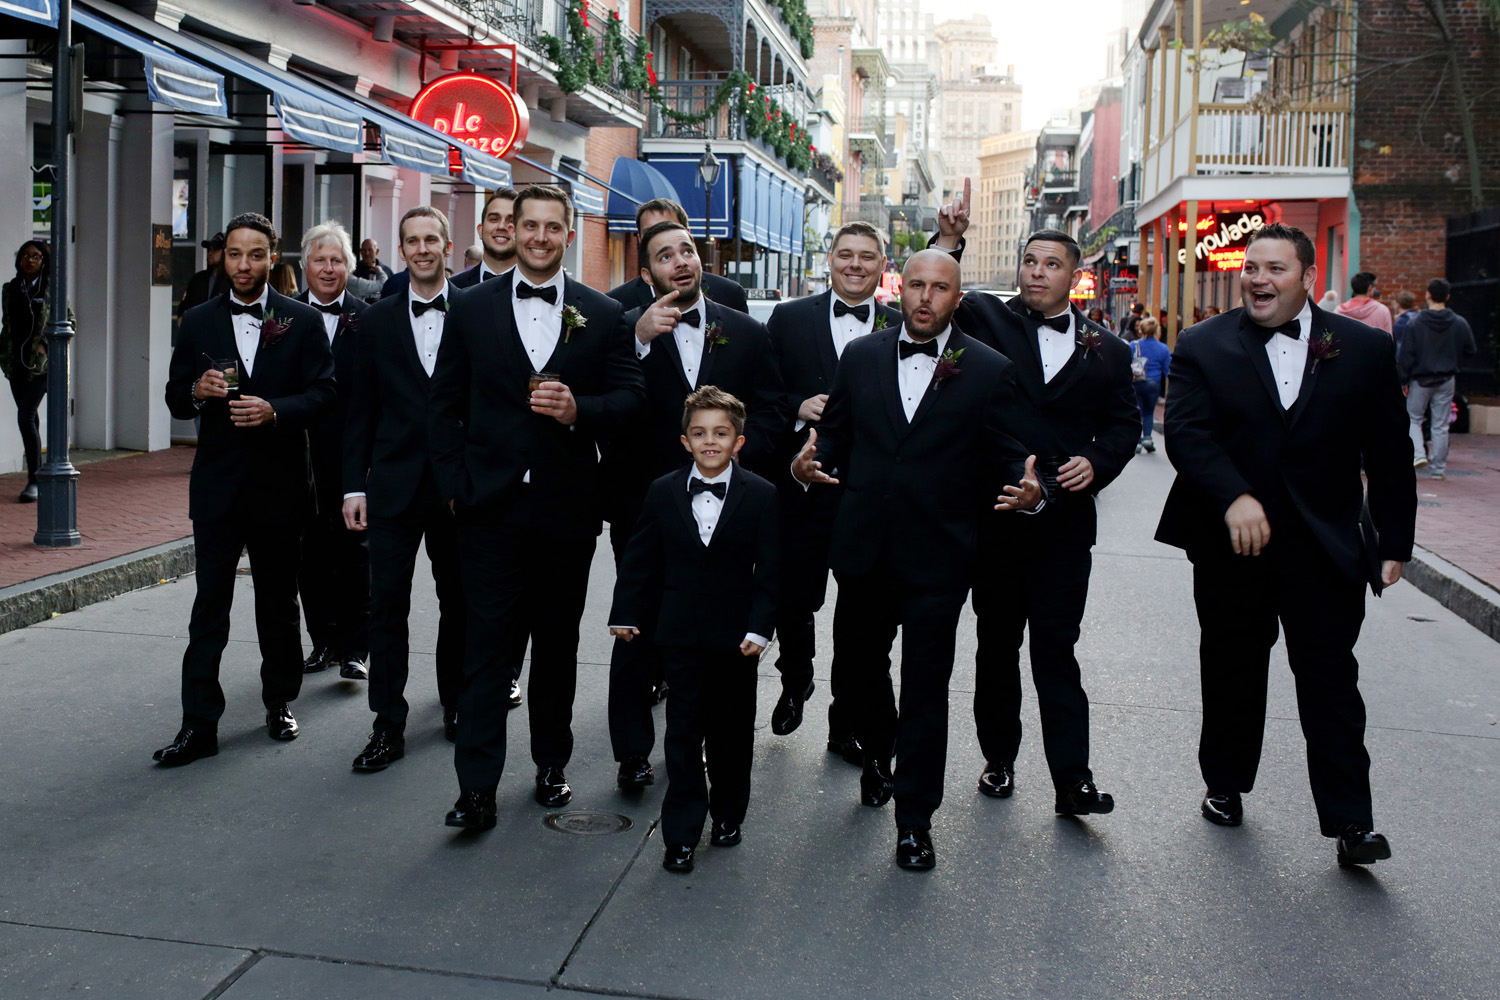 David and his groomsmen took to Bourbon Street before the wedding for some casual, fun portraits.